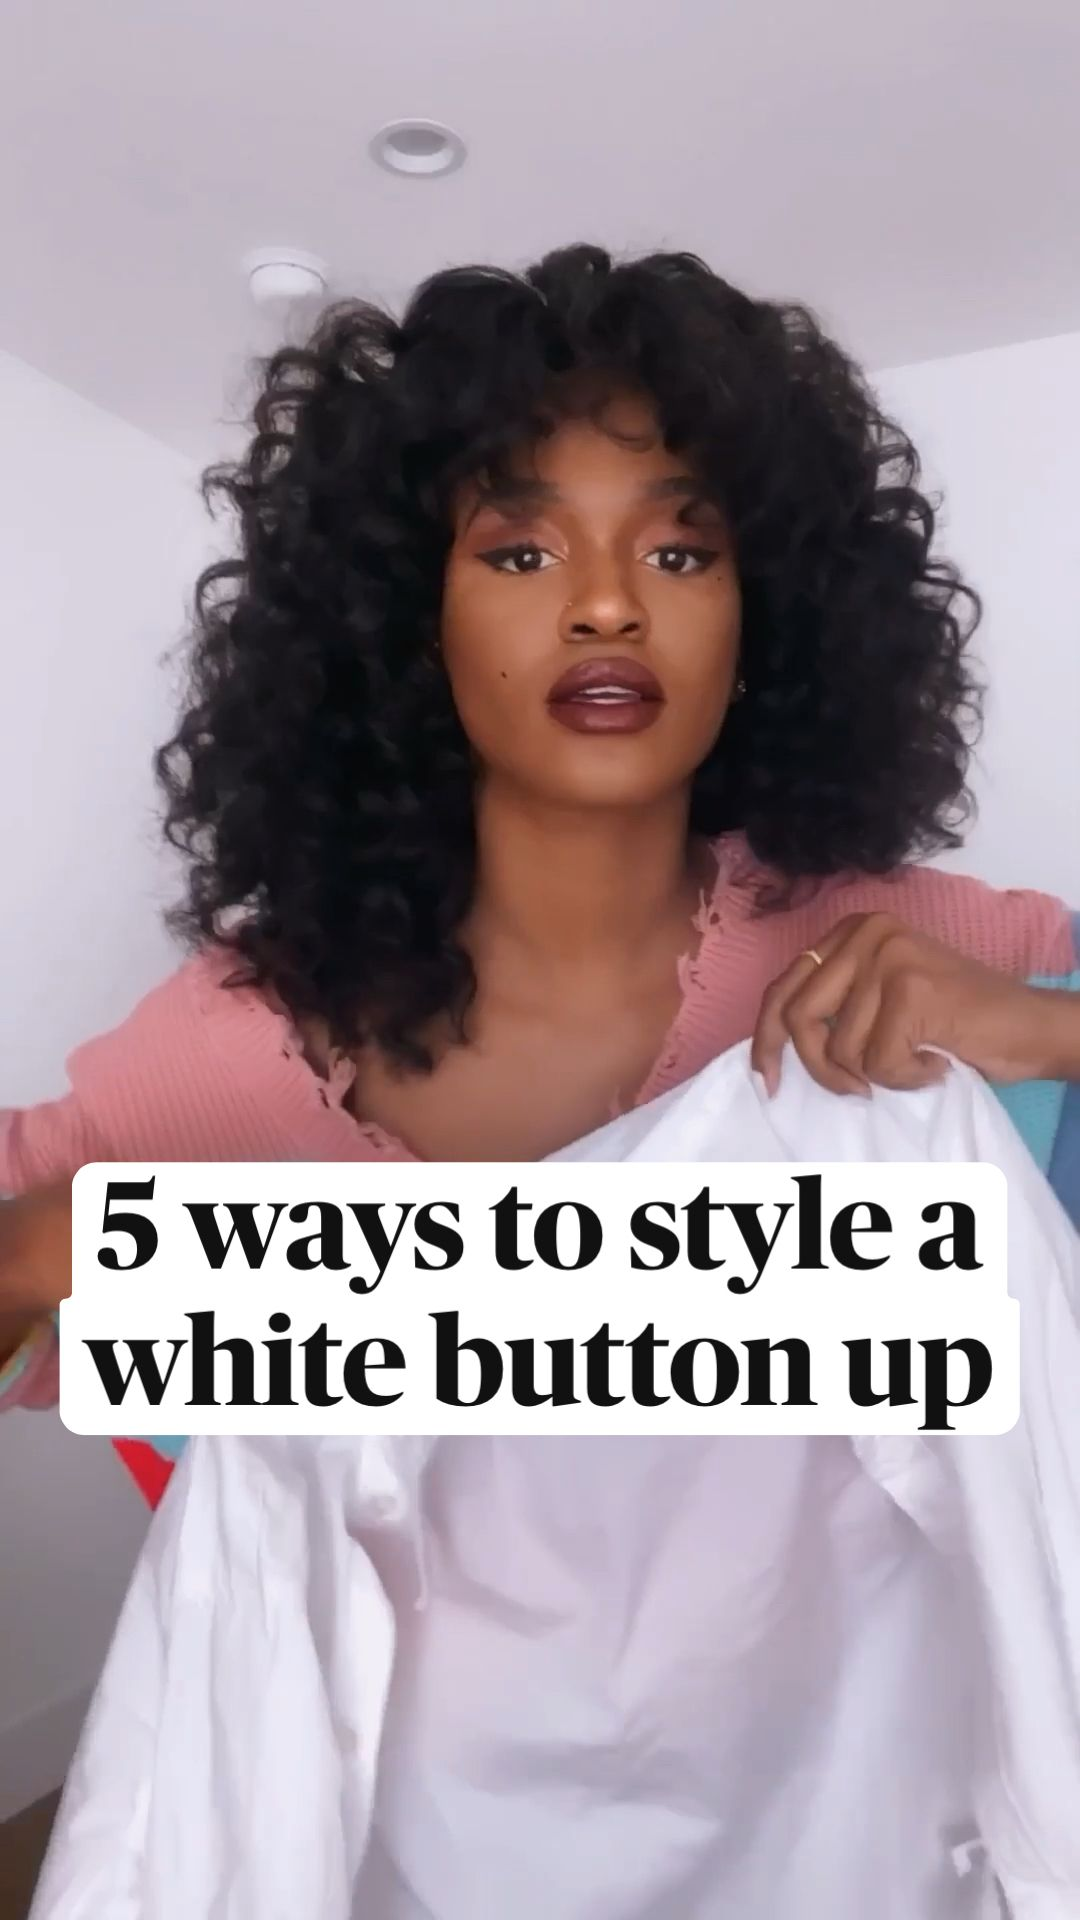 5 Ways To Style A White Button Up